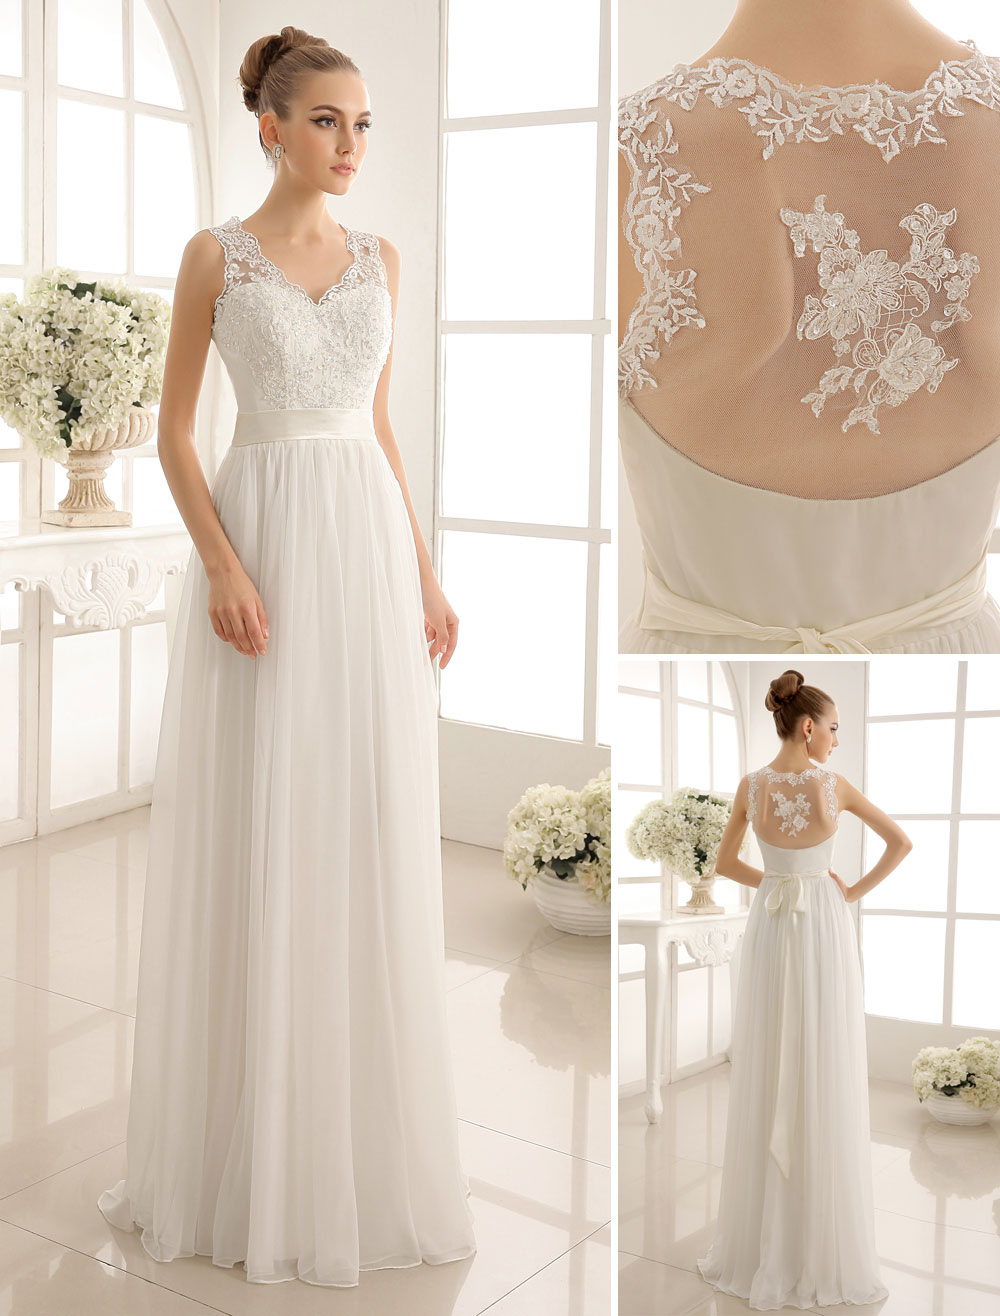 Ivory Wedding Dress Lace Sash Bow Sequins Wedding Gown Milanoo